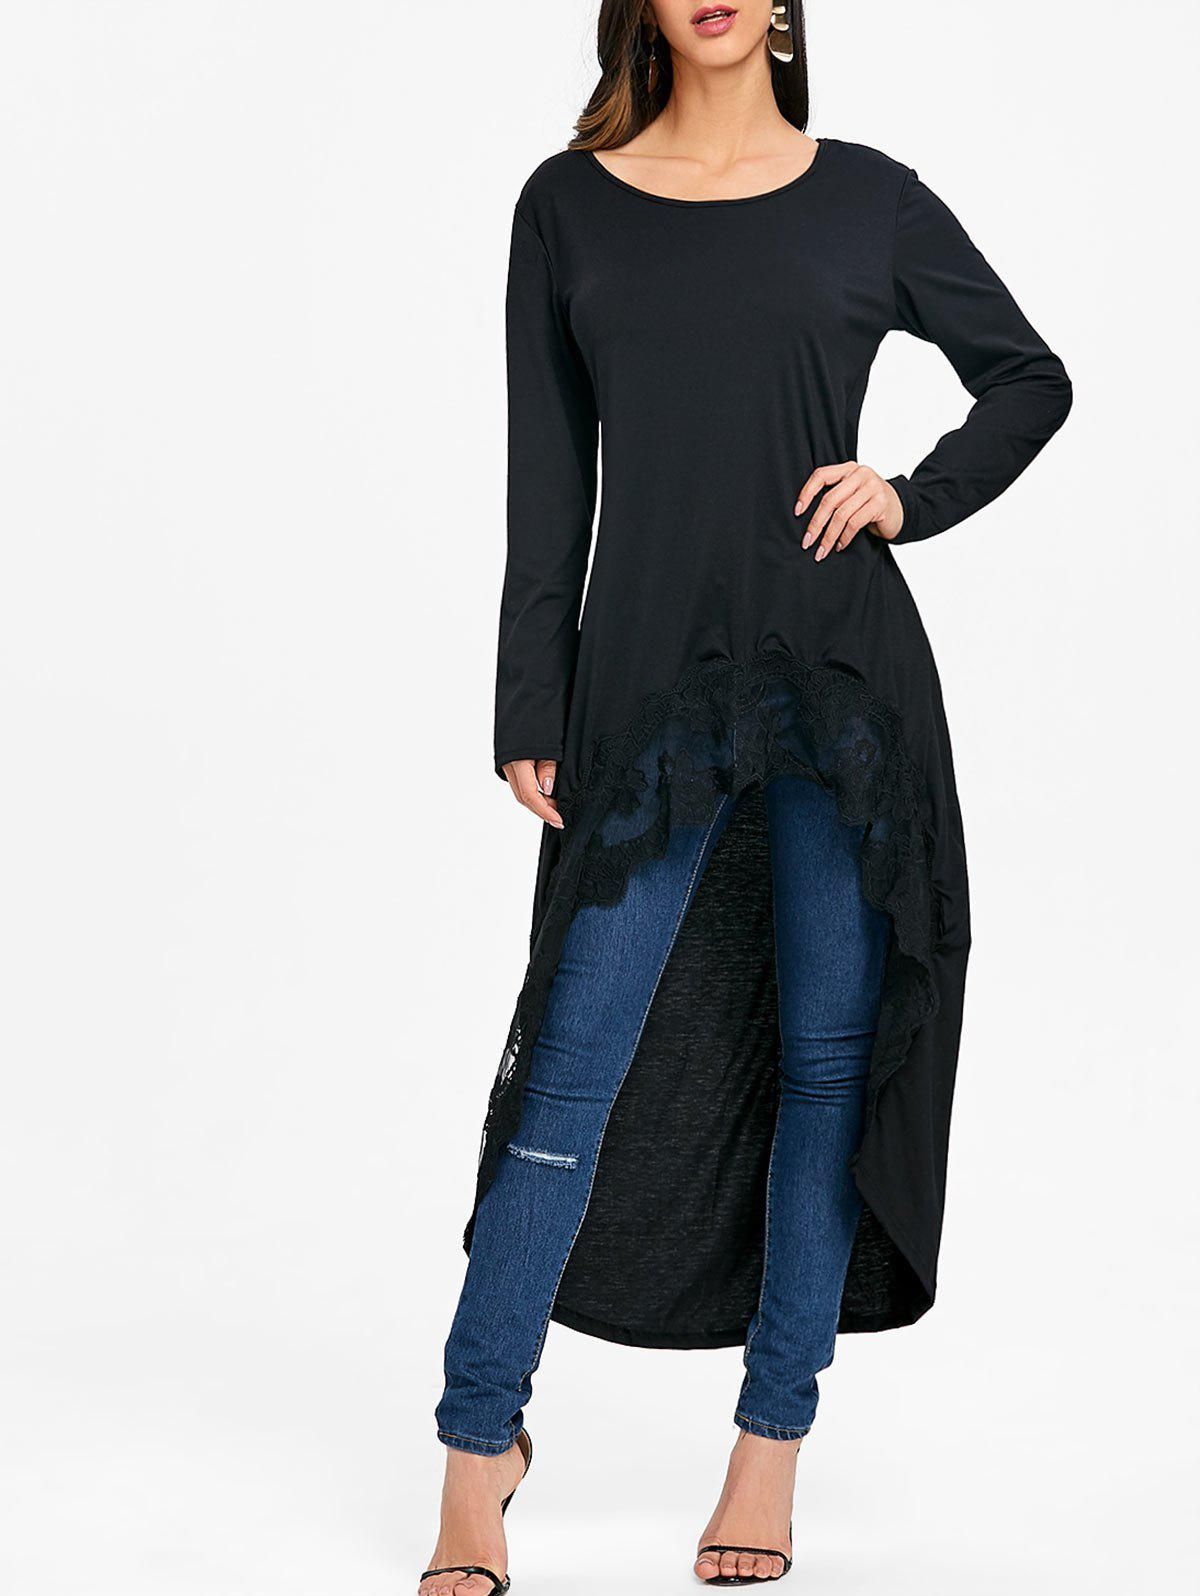 Lace Trimmed High Low Long Sleeve Top